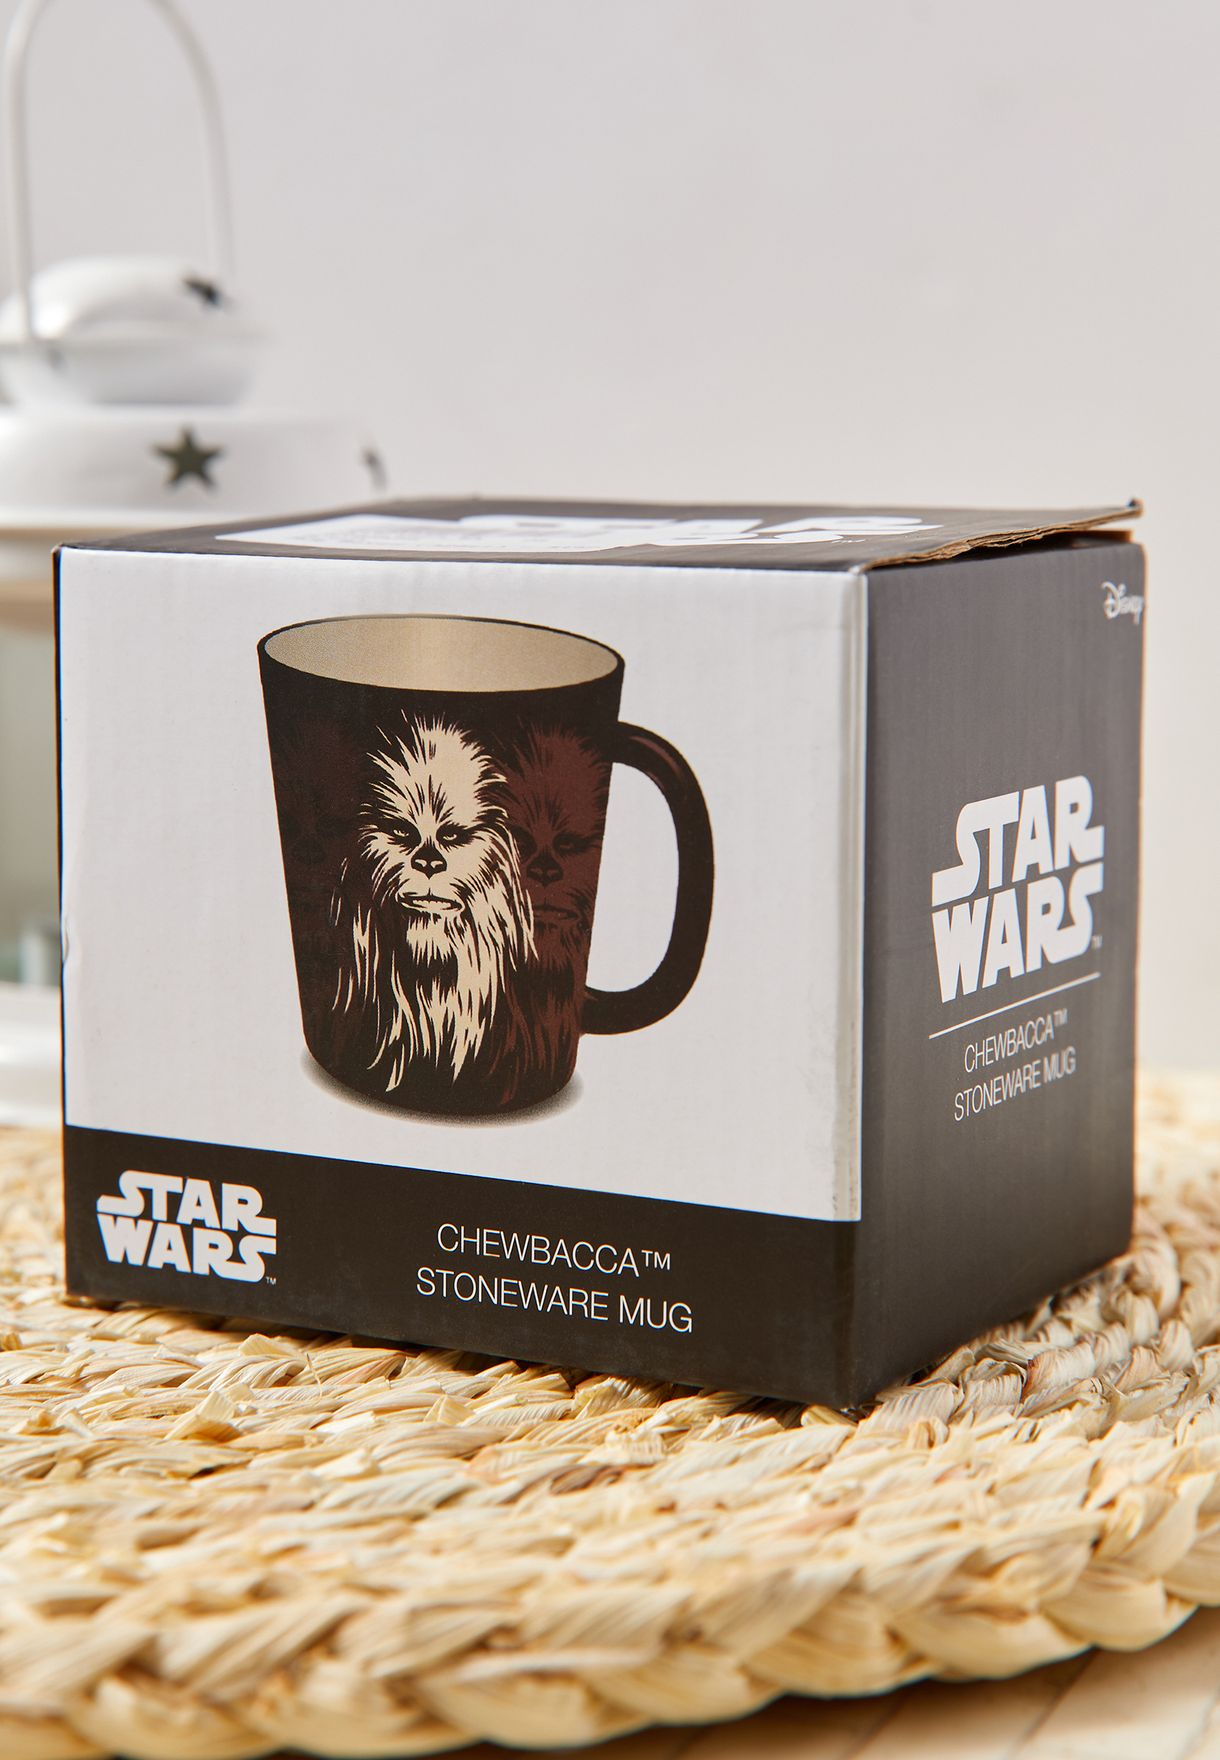 Star Wars Chewbacca Mug